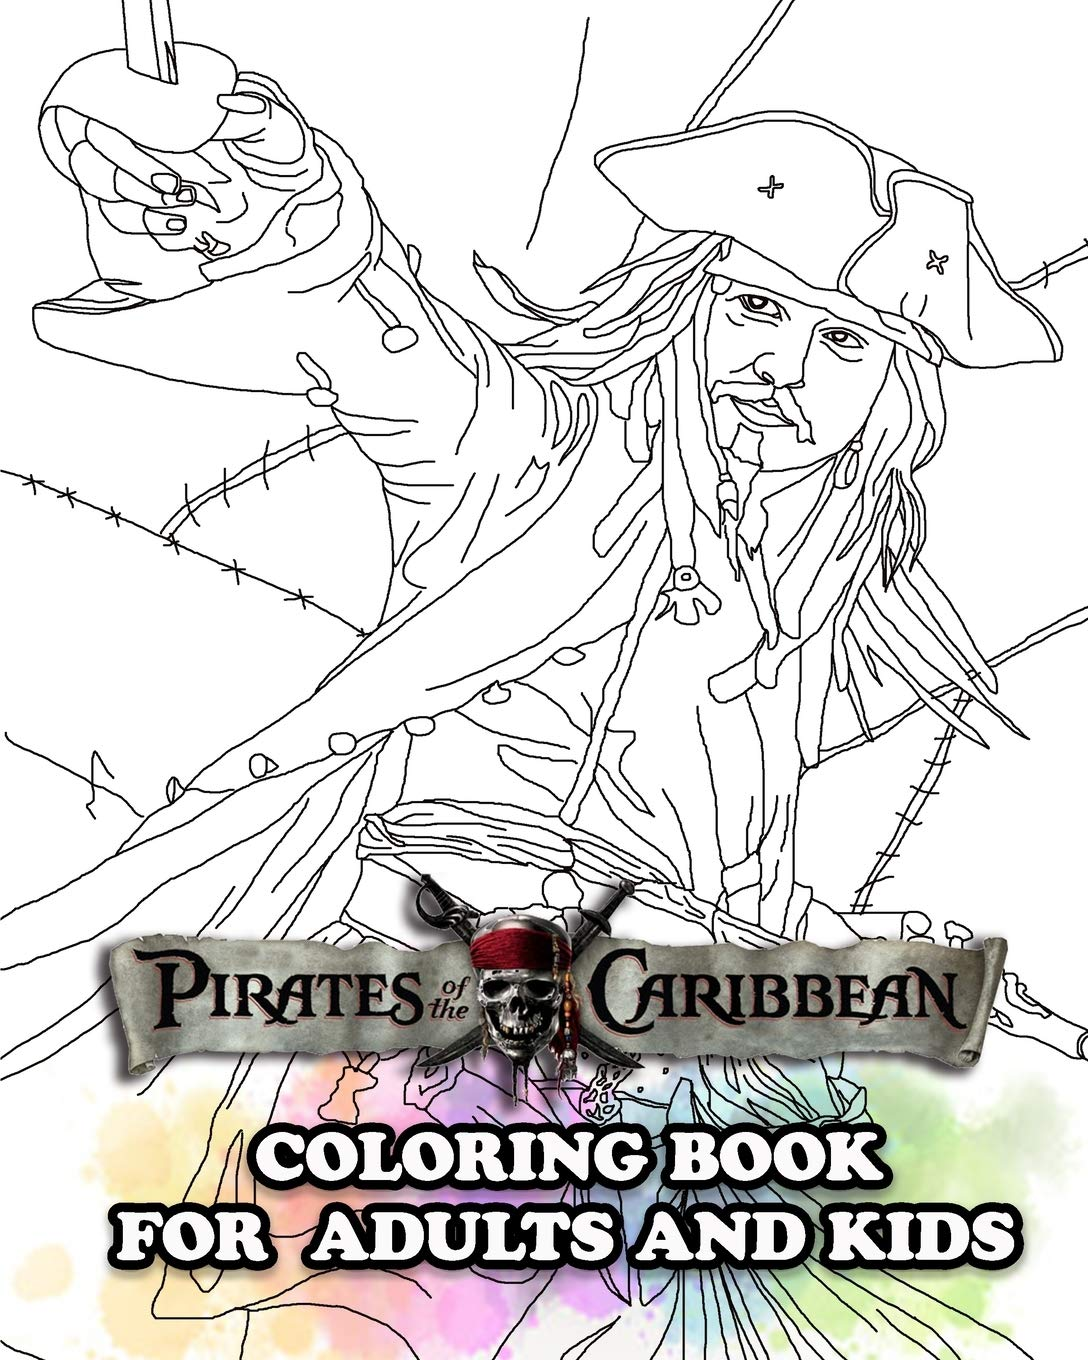 Pirates Of The Caribbean Coloring Book For Adults And Kids Coloring All Your Favorite Pirates Of The Caribbean Characters Jason Mark 9798656387842 Amazon Com Books